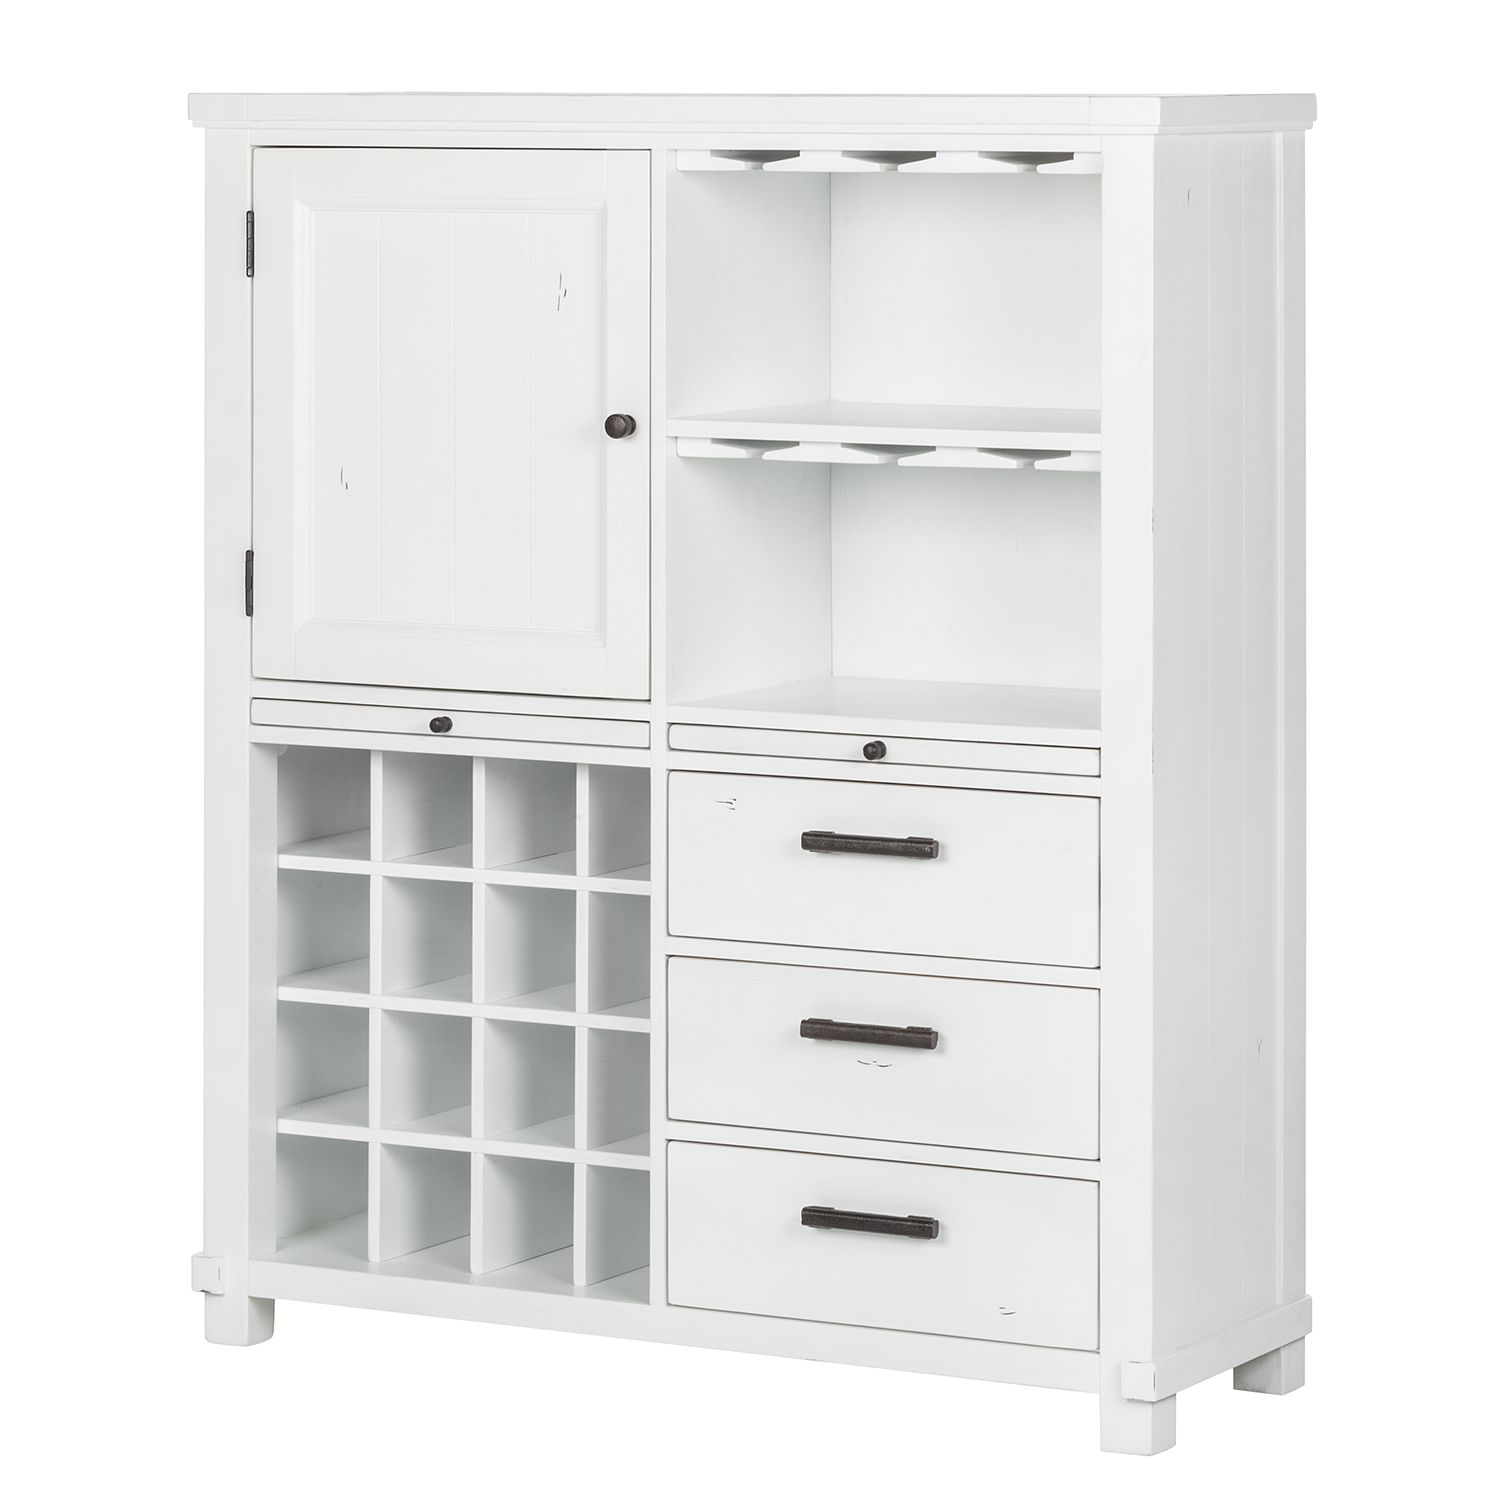 Home 24 - Buffet haut south hampton - acacia partiellement massif - blanc, maison belfort